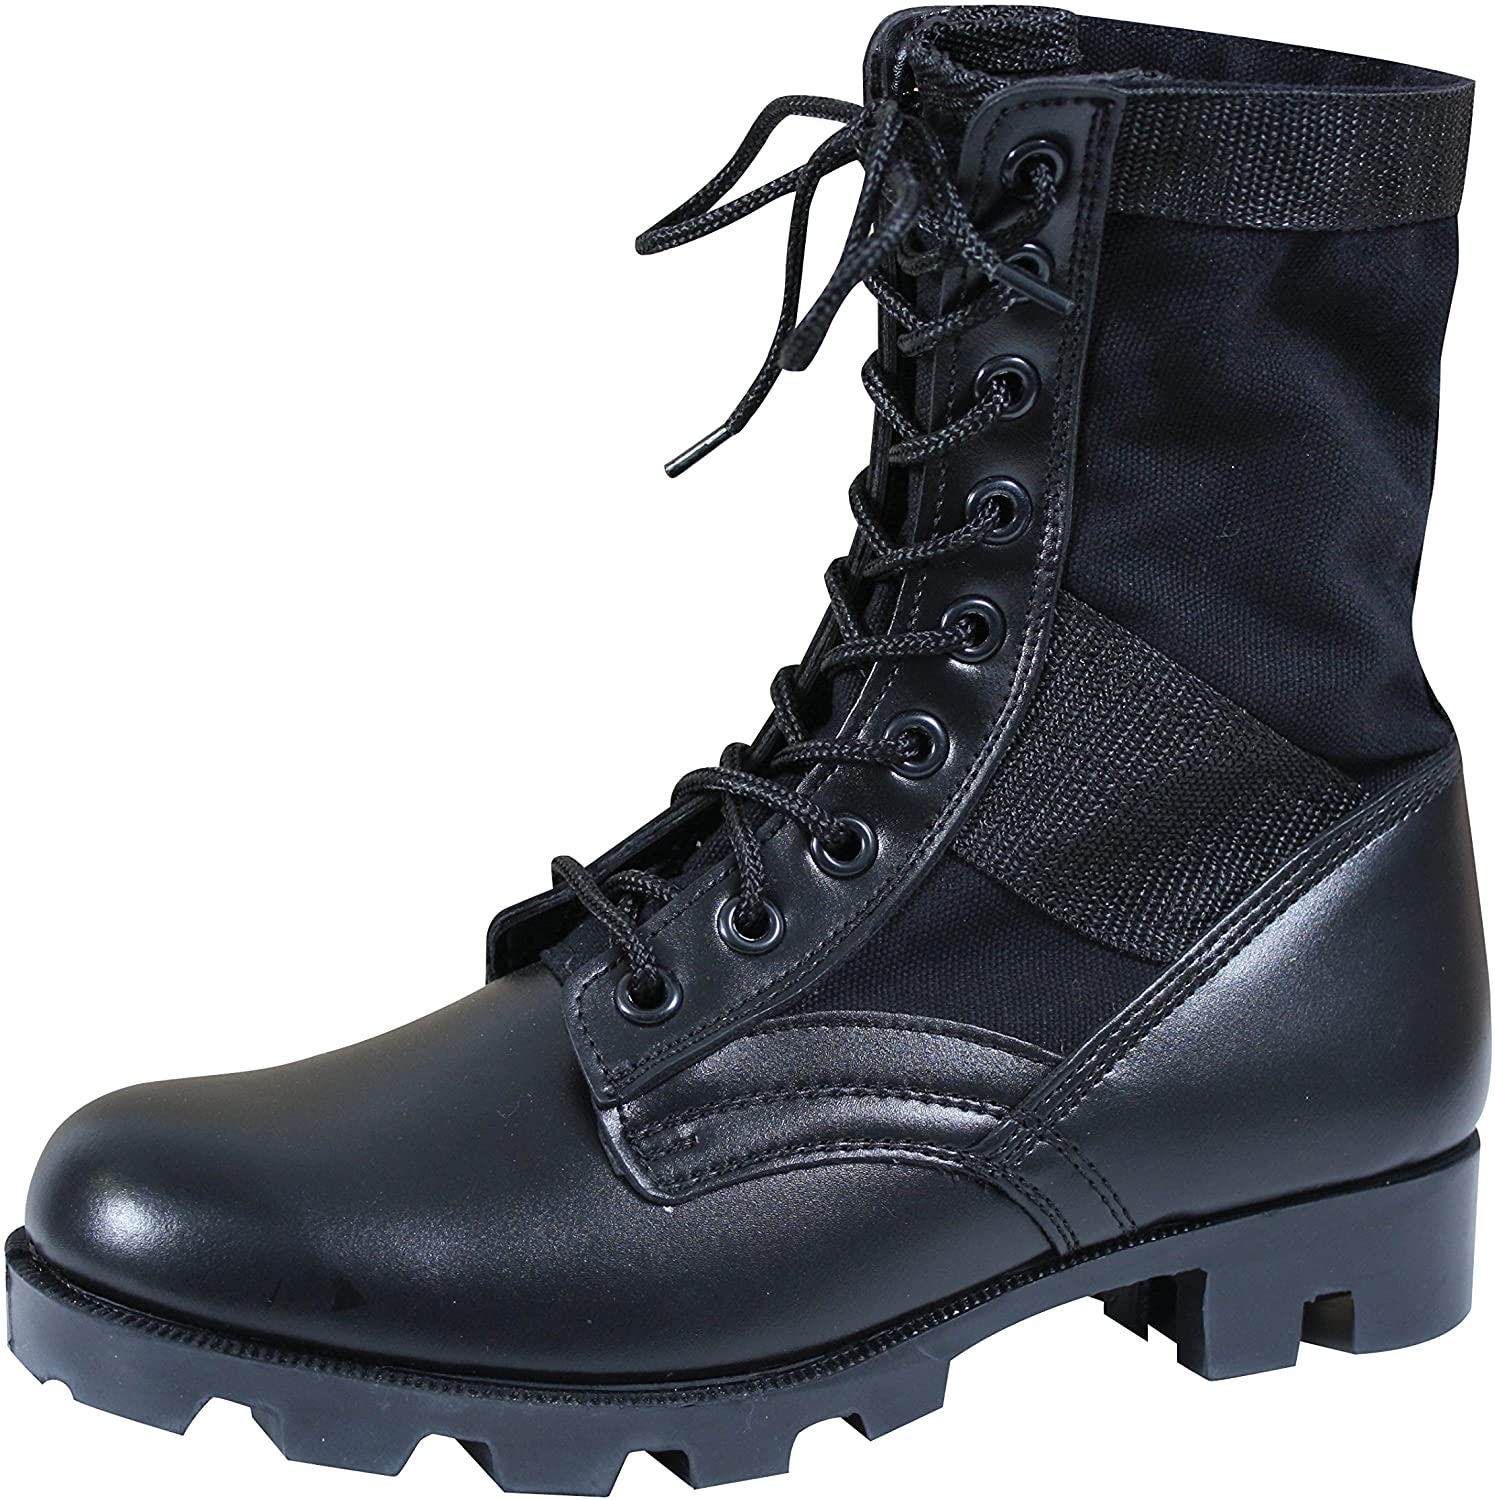 Rothco Gi Type Jungle Boot, Black